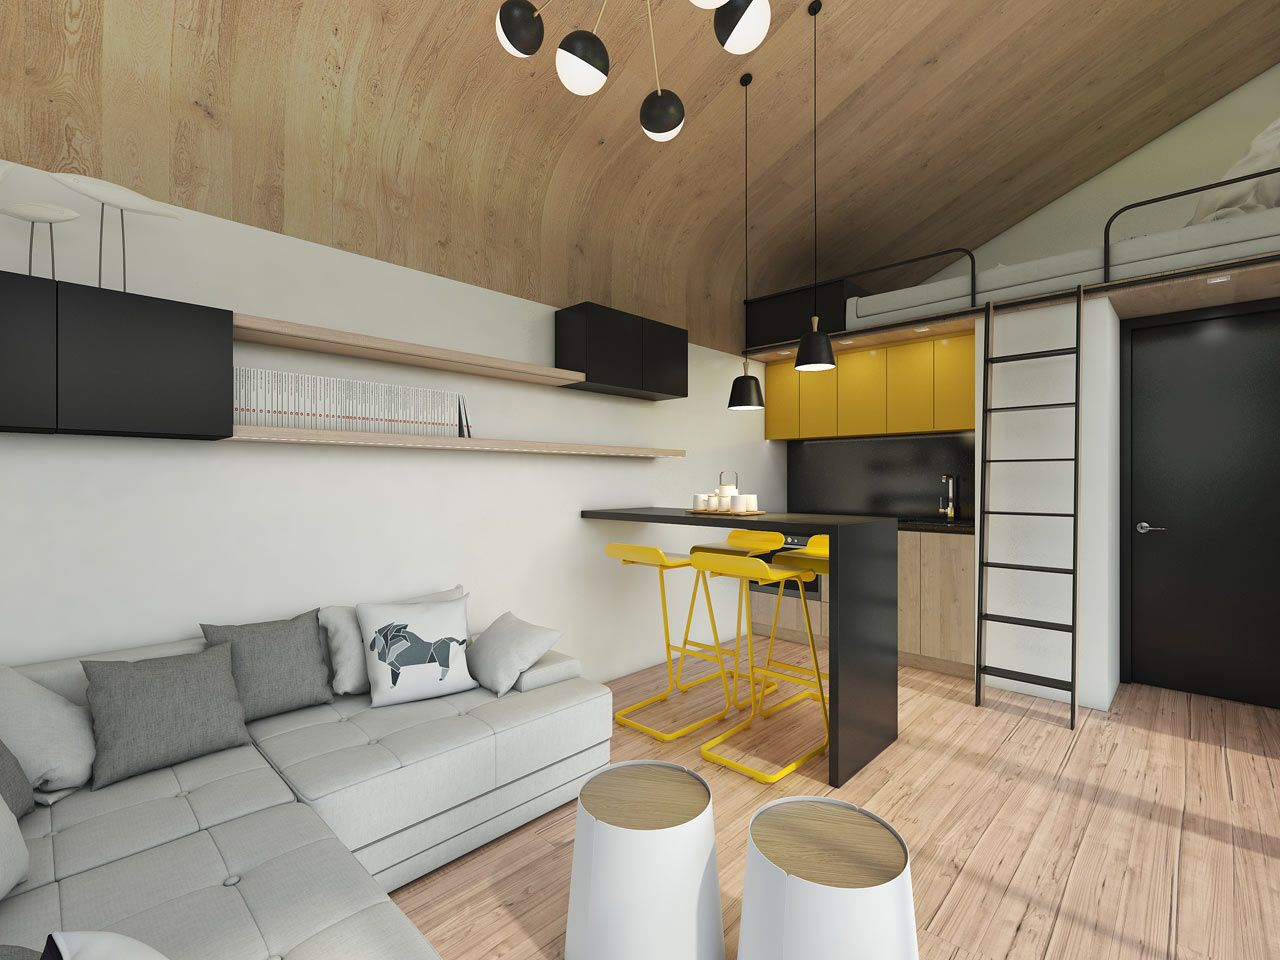 The tiny eco house is a prefabricated concept thats only 20 square meters 215 square feet and constructed of mostly natural materials like wood